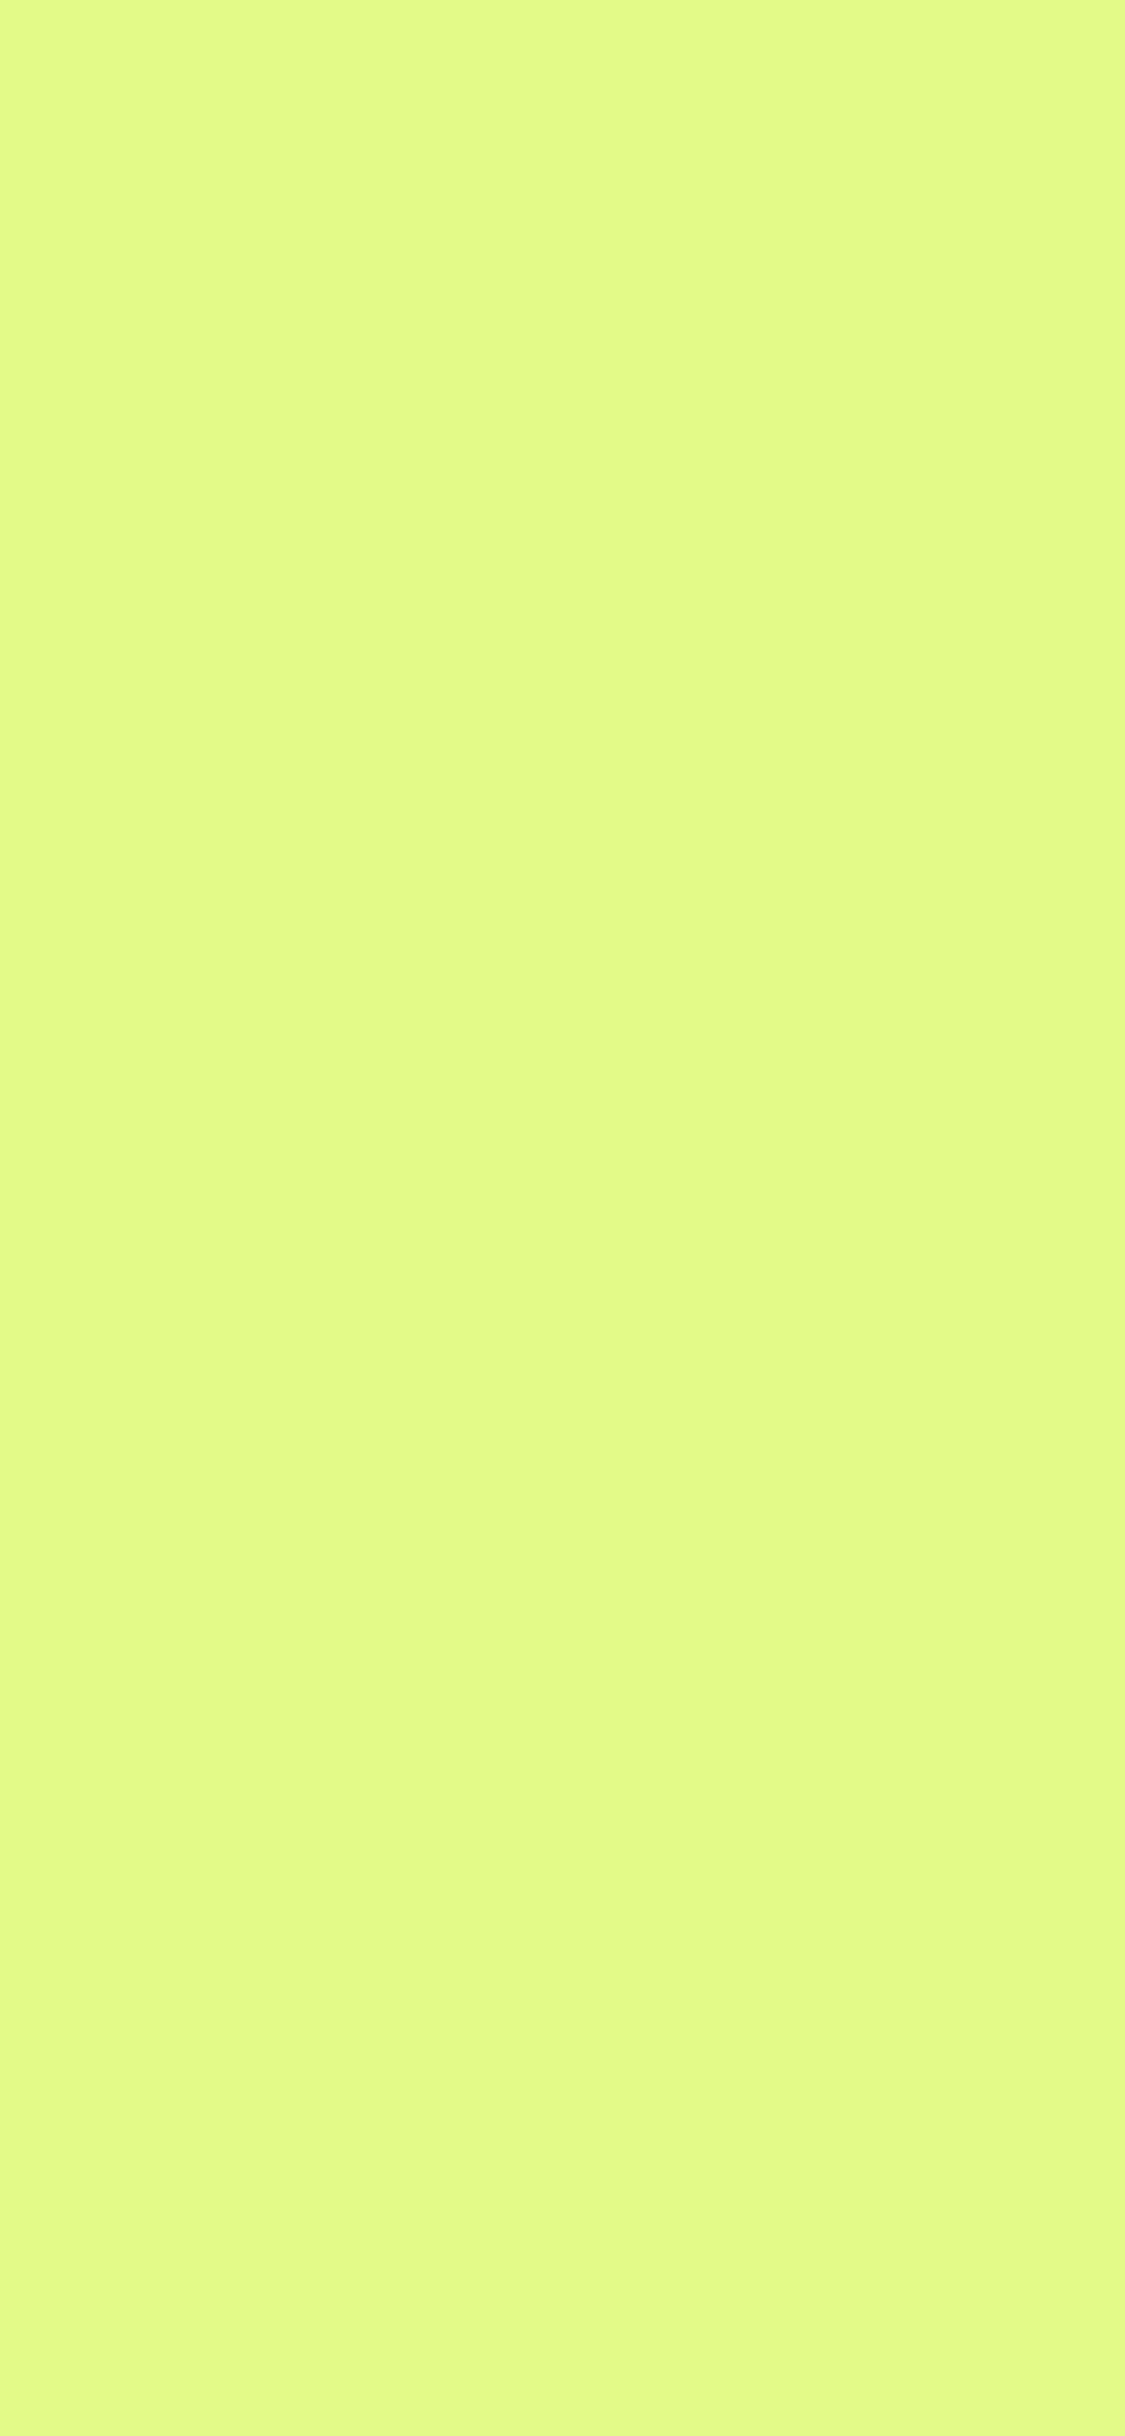 1125x2436 Midori Solid Color Background